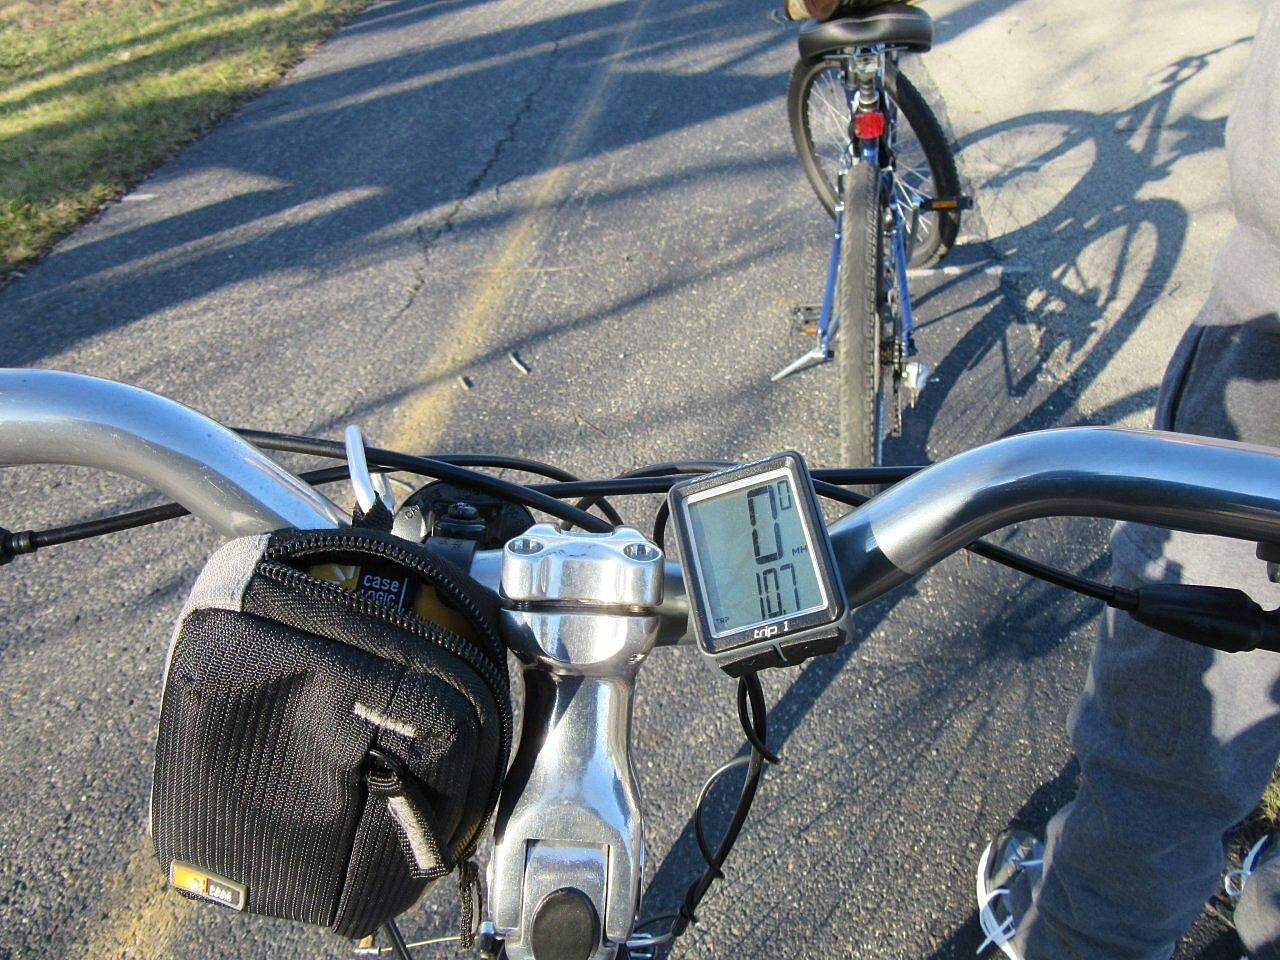 Western Reserve Greenway Mileage check how many miles it is from Sunnyside Parking lot in Champion to North Bloomfield.